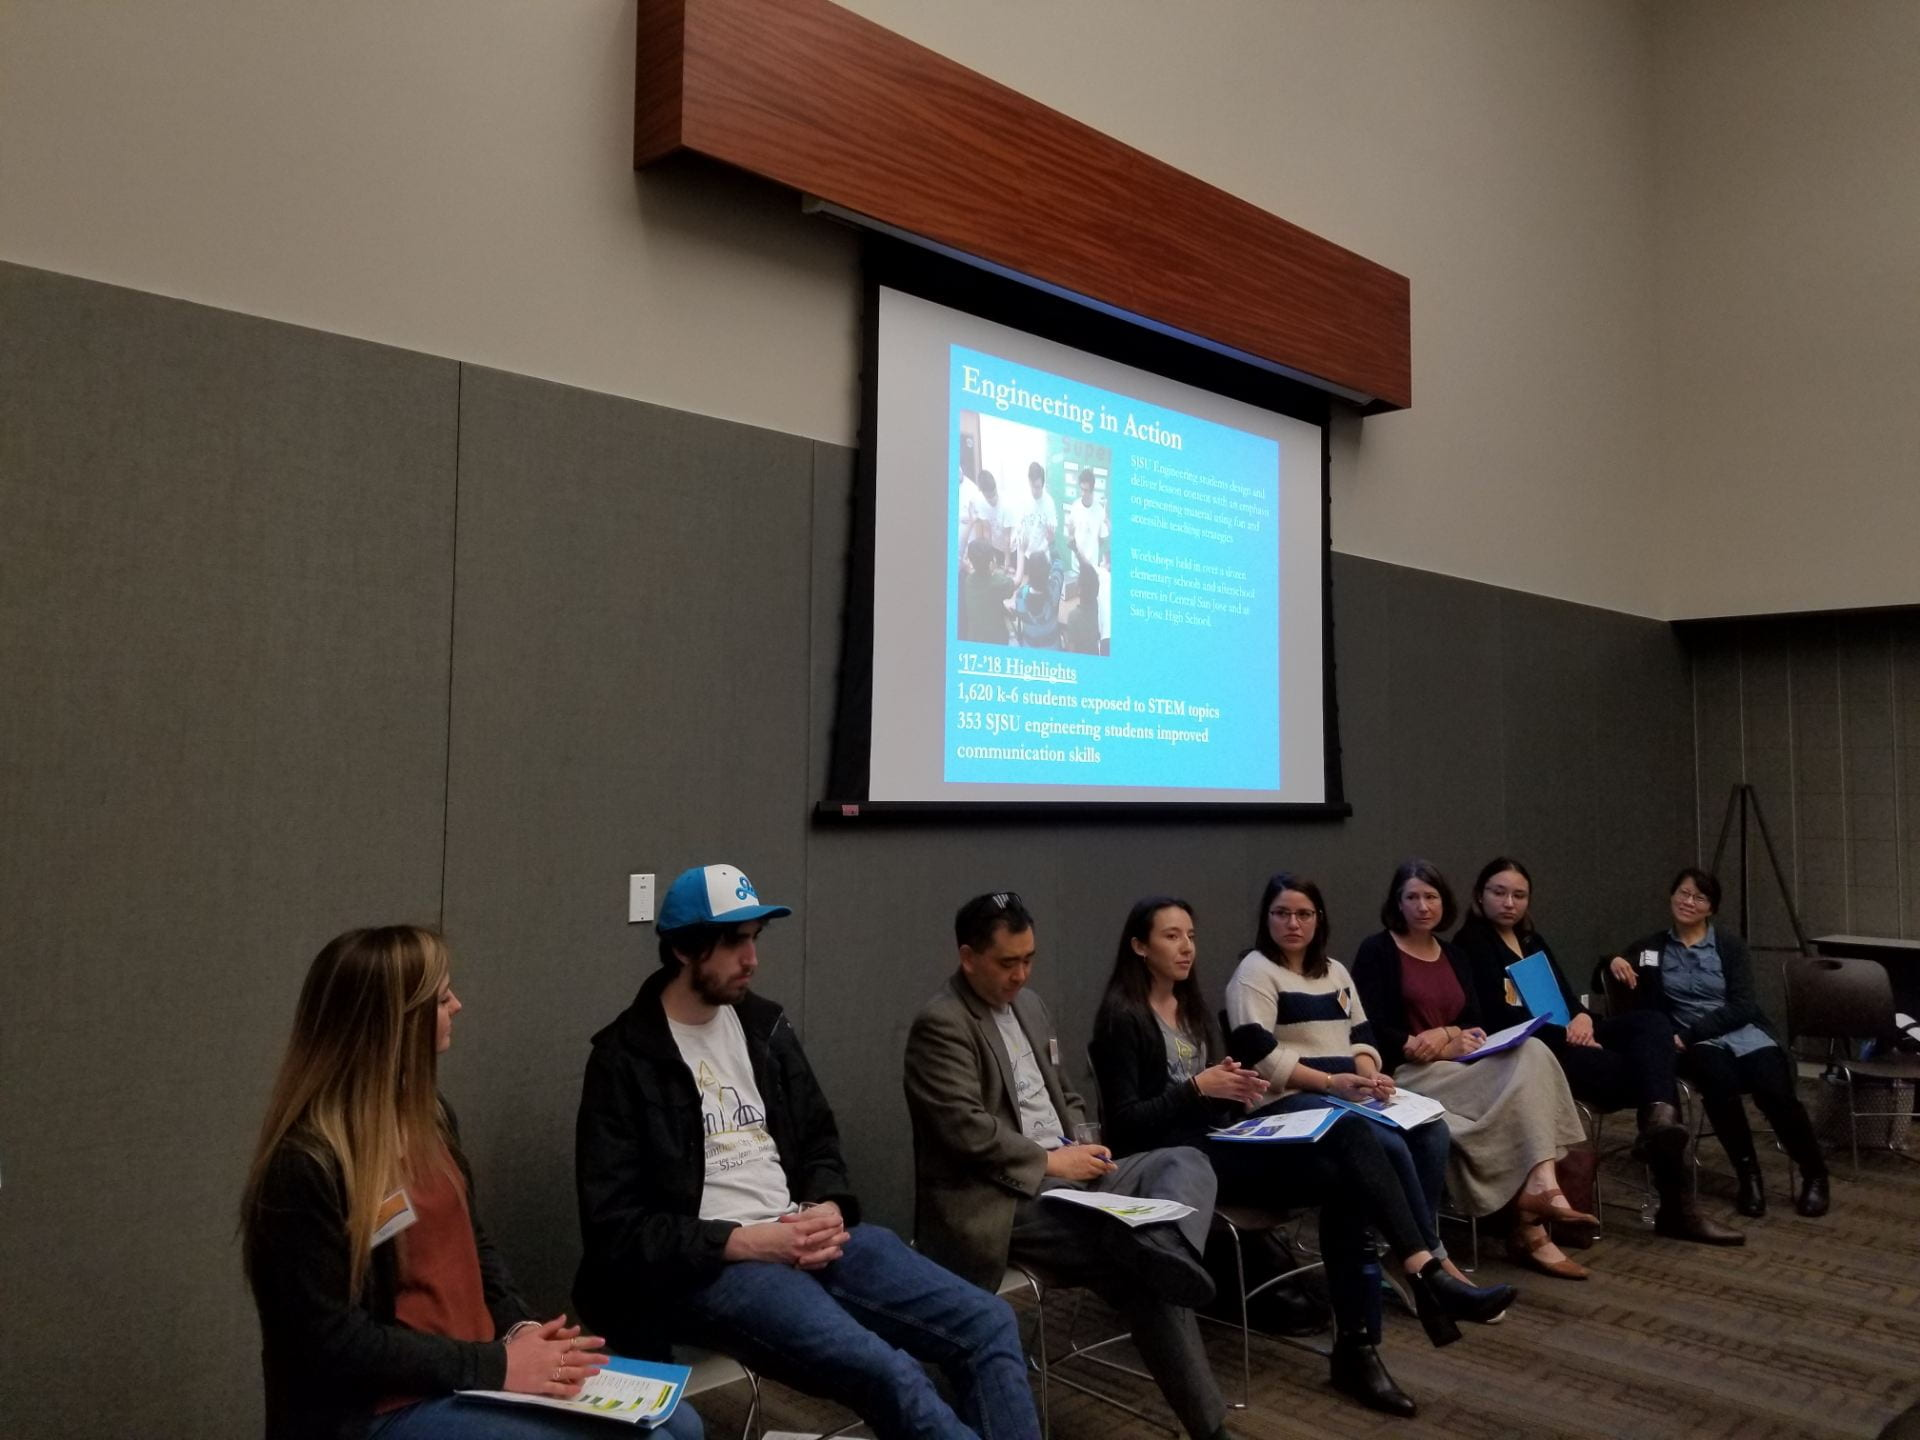 Students and faculty share their experience with service learning projects through CommUniverCity at the Student Success Symposium April 15.